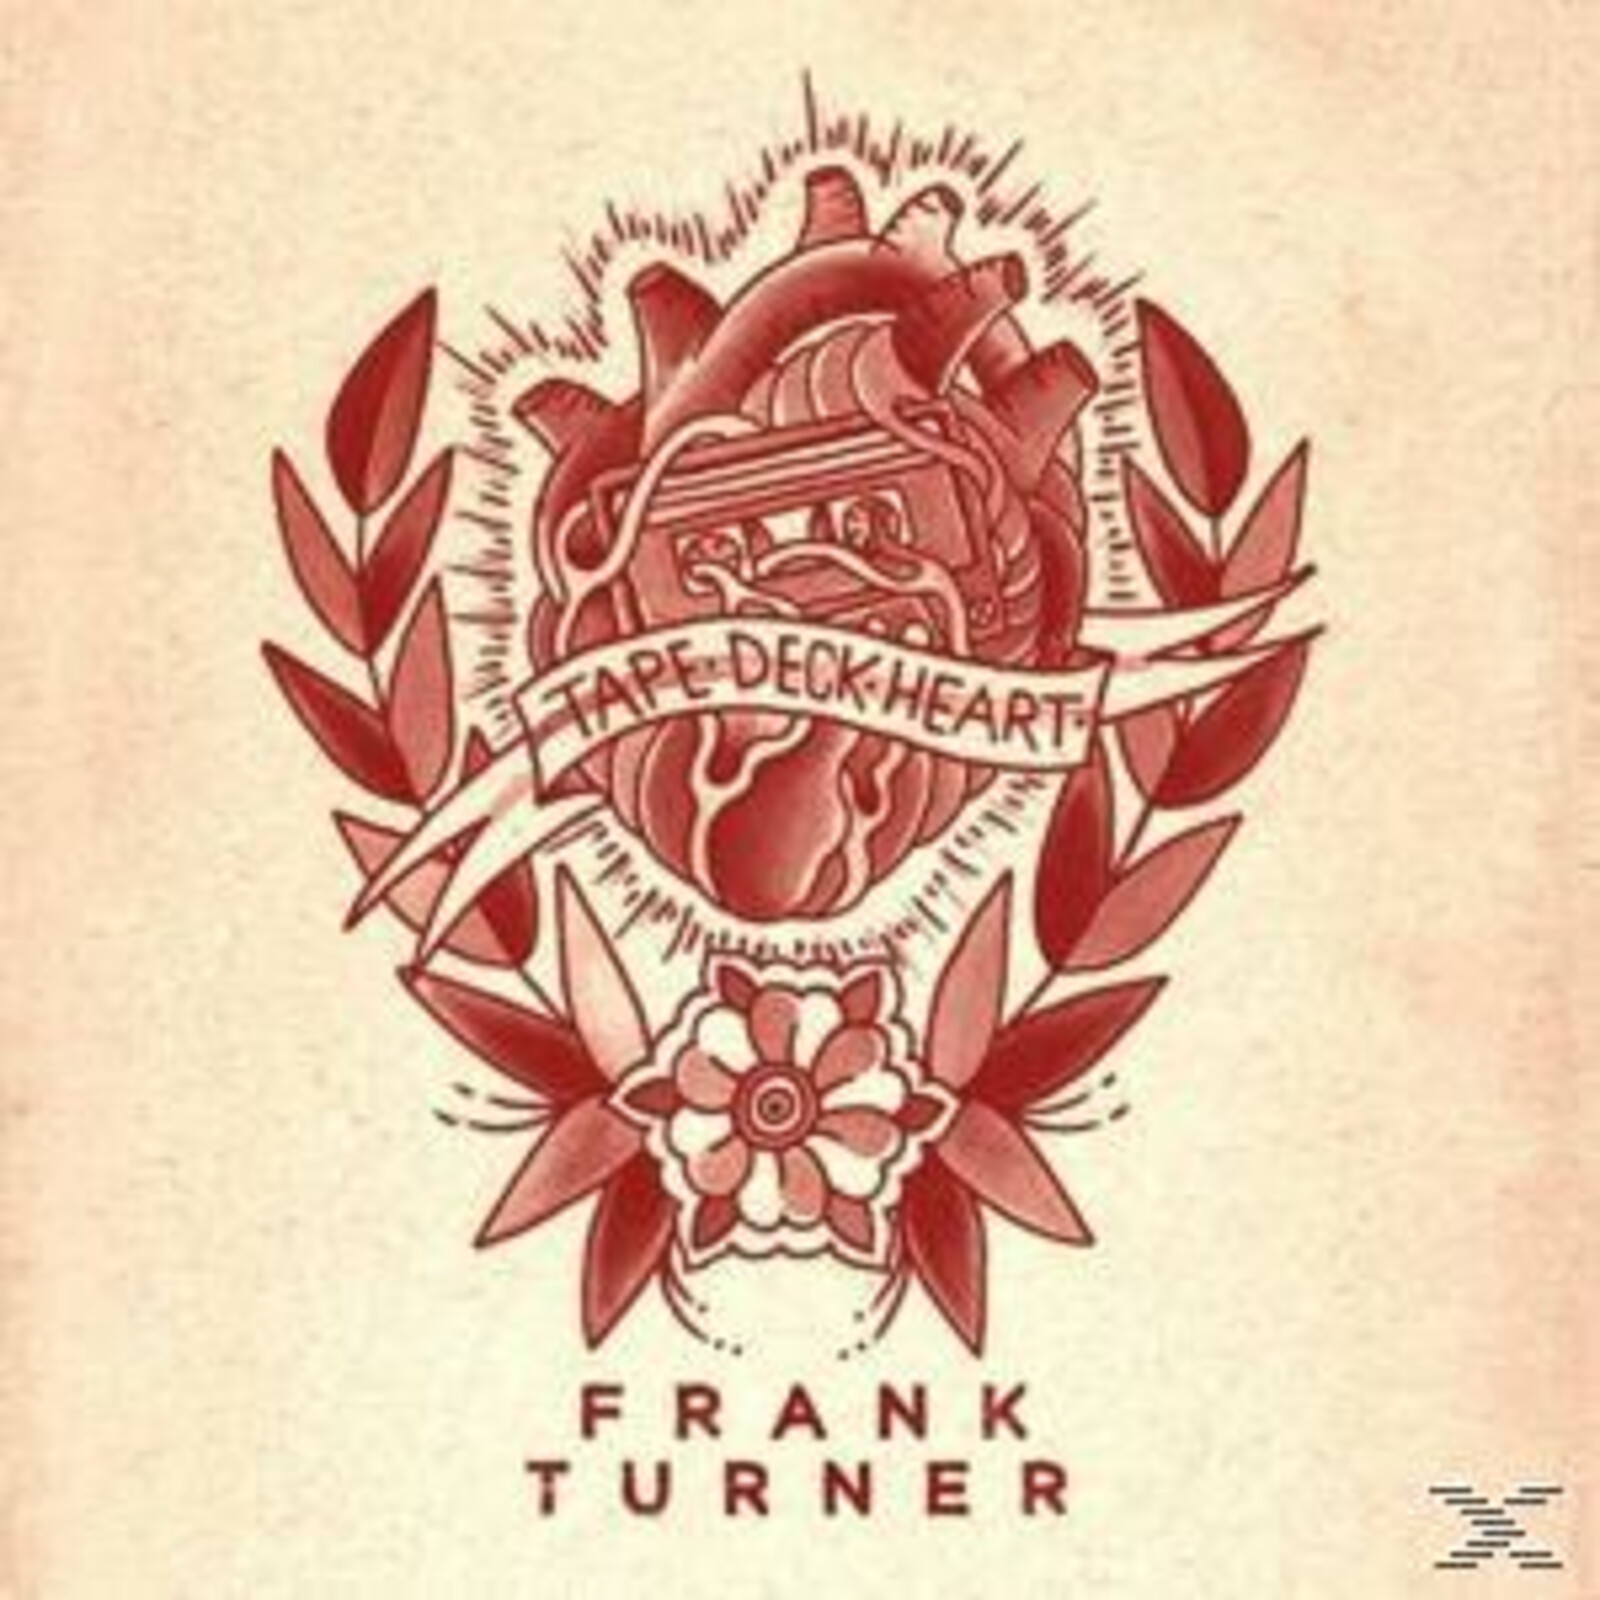 Frank Turner - Tape Deck Heart (Vinyl Lp) - (Vinyl)